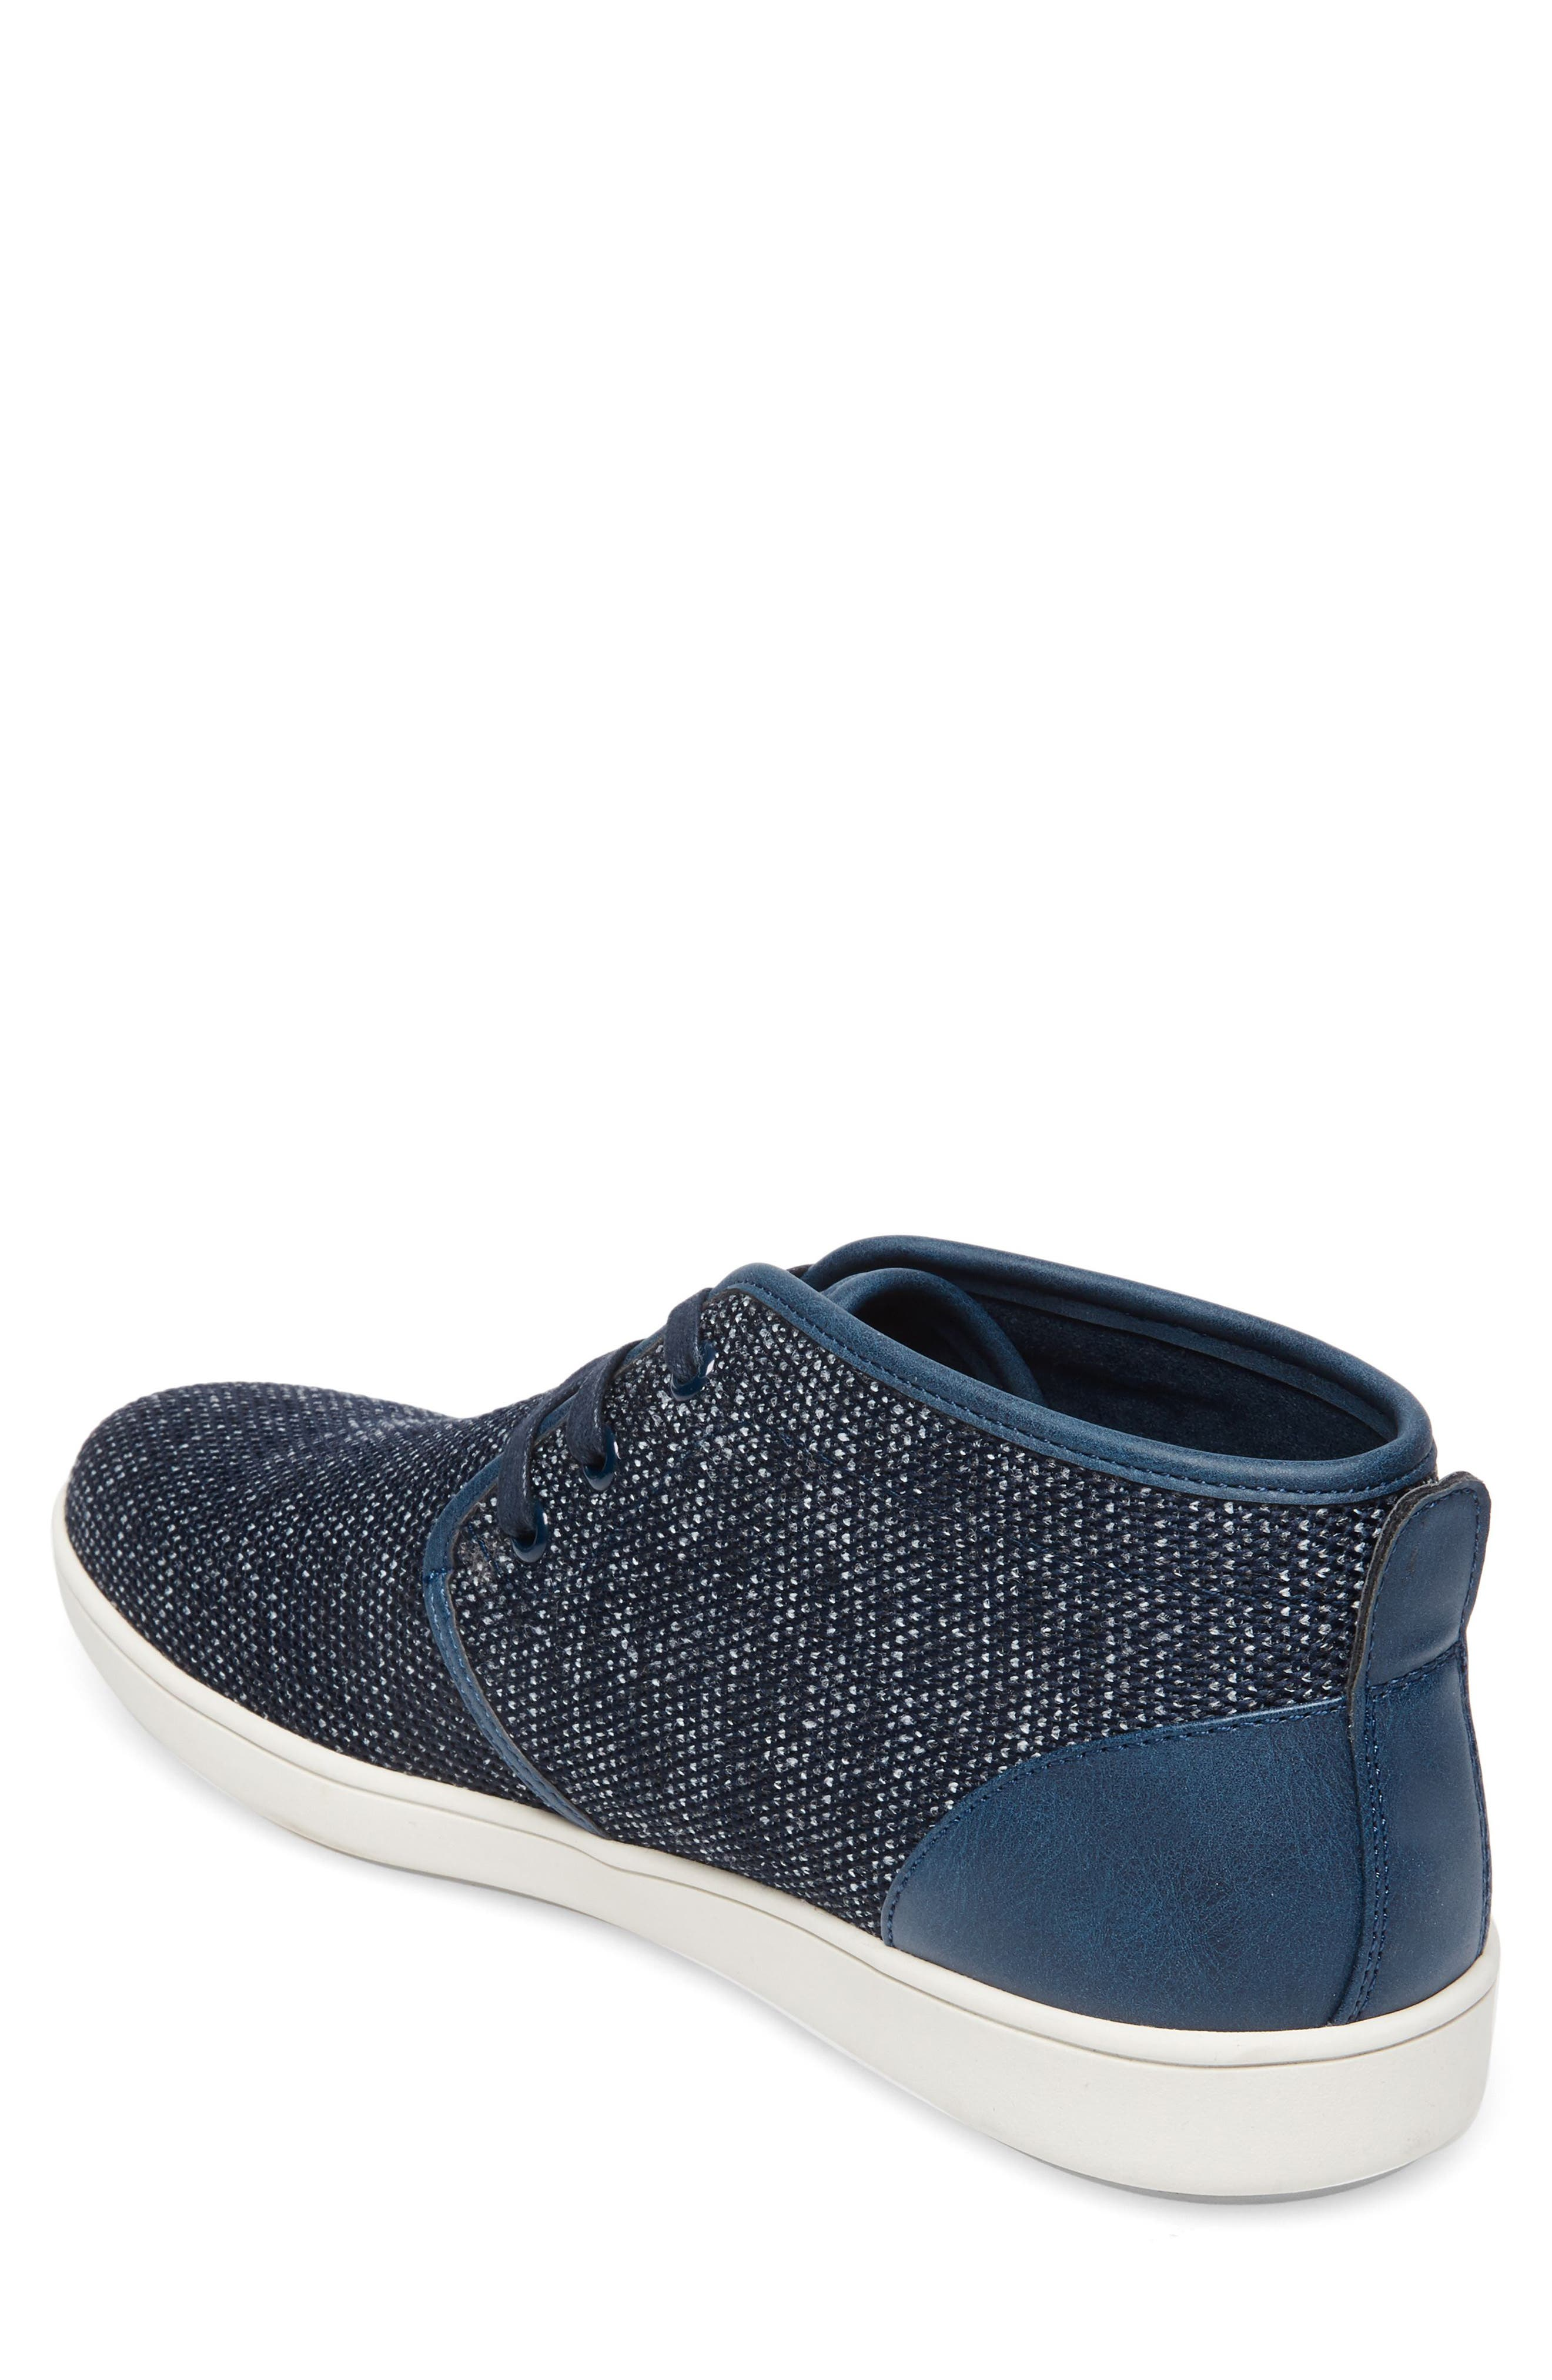 Fowler Knit Mid Top Sneaker,                             Alternate thumbnail 2, color,                             NAVY LEATHER